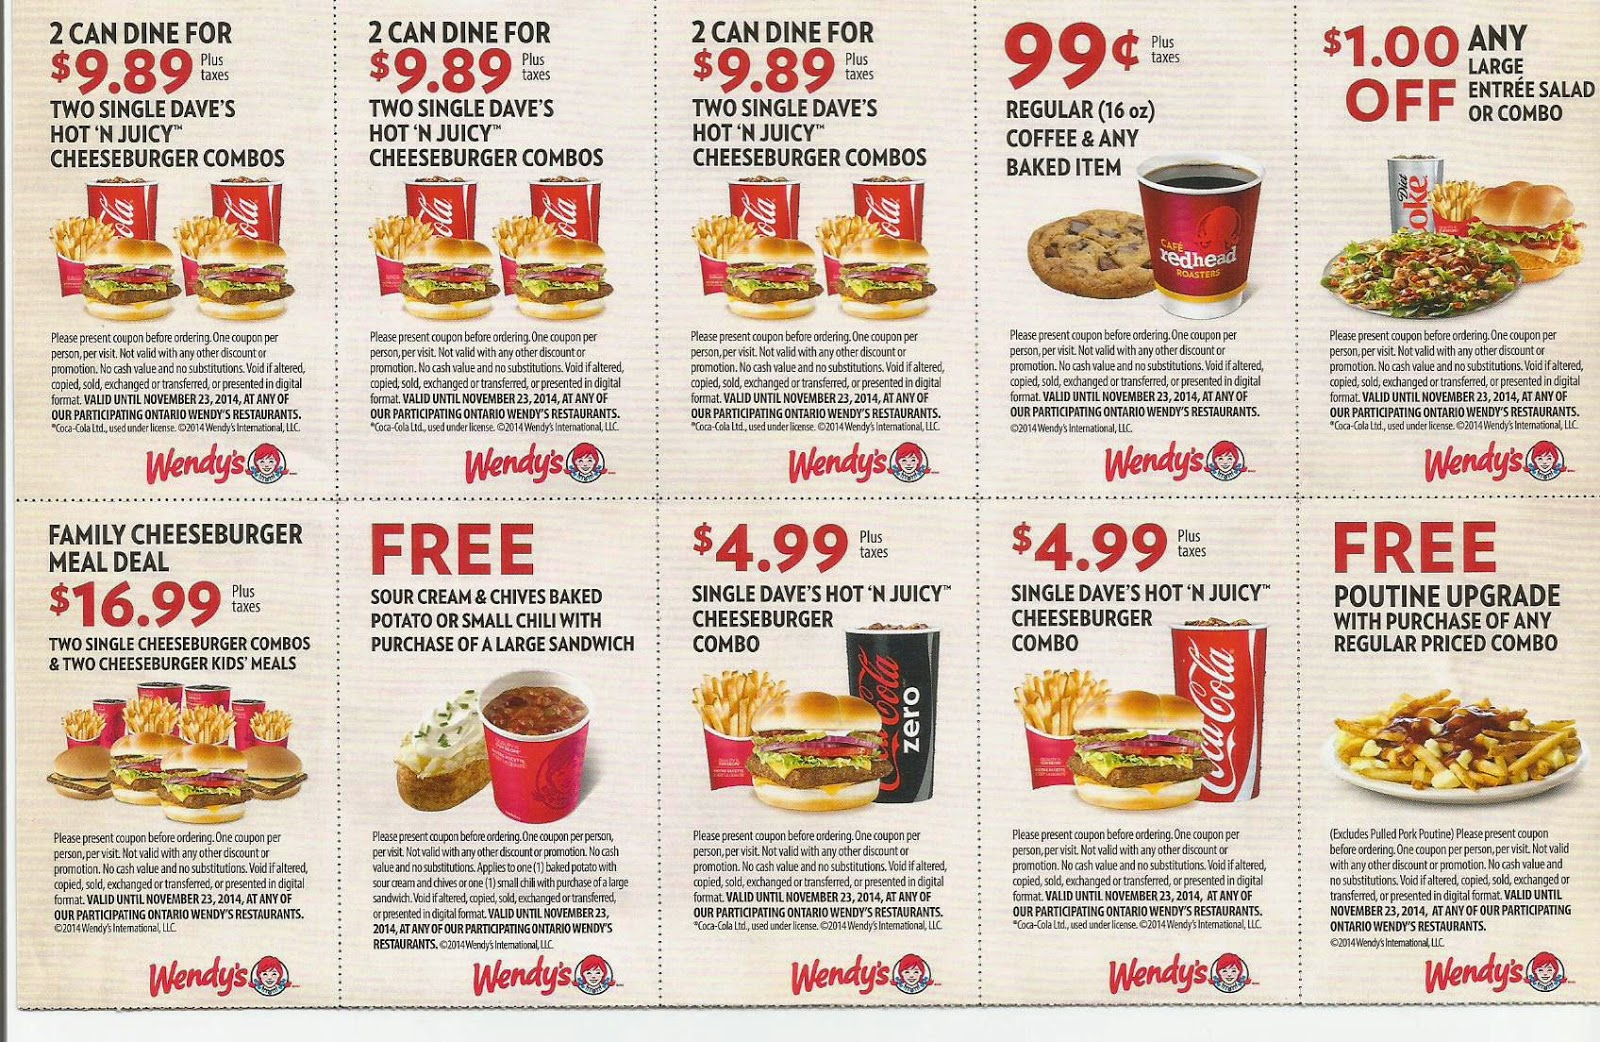 free coupons to print out